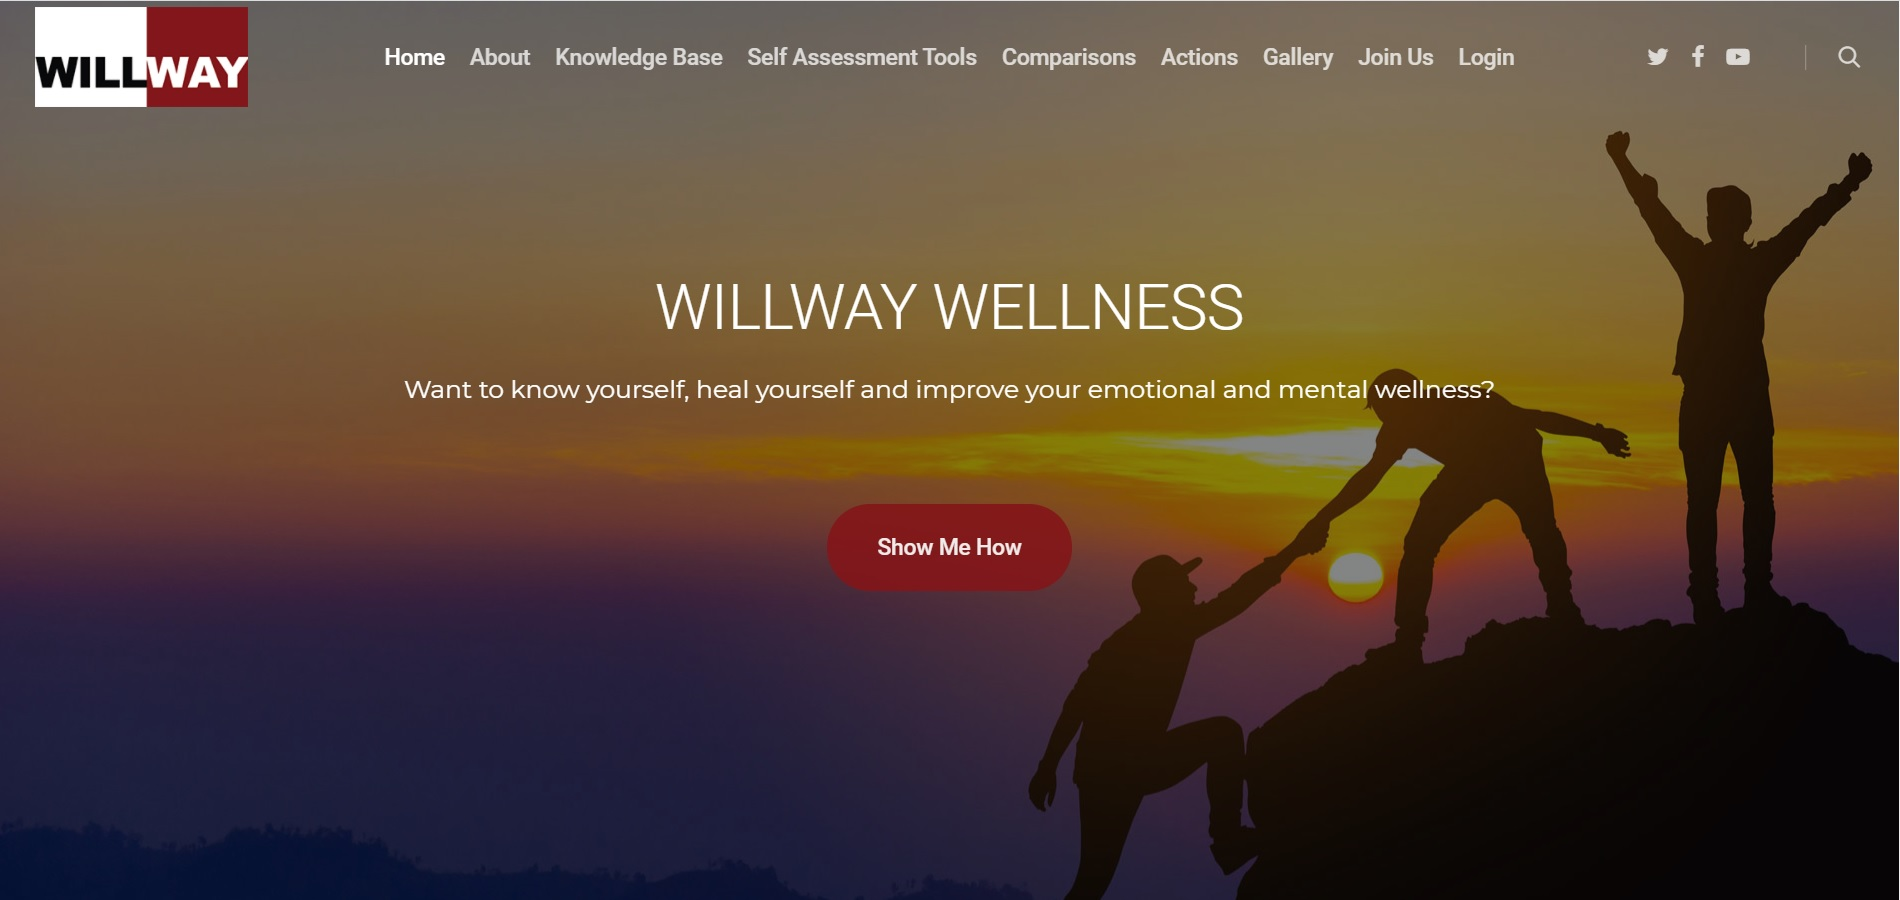 Willway Wellness health and wellbeing website 1